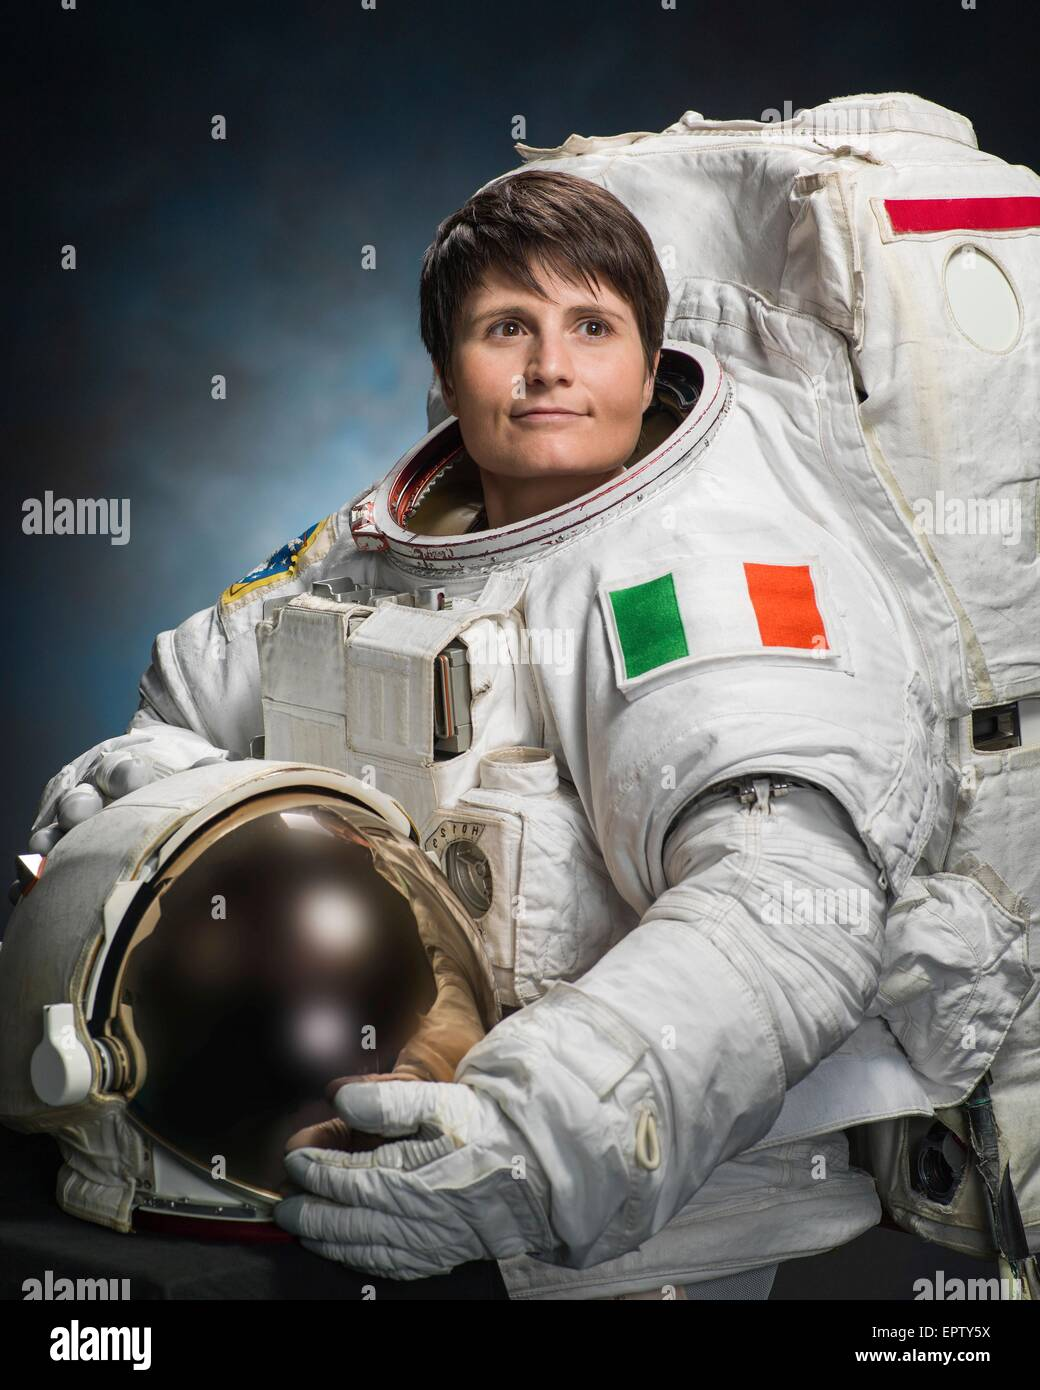 Astronaut Samantha Cristoforetti Of The European Space Agency Stock